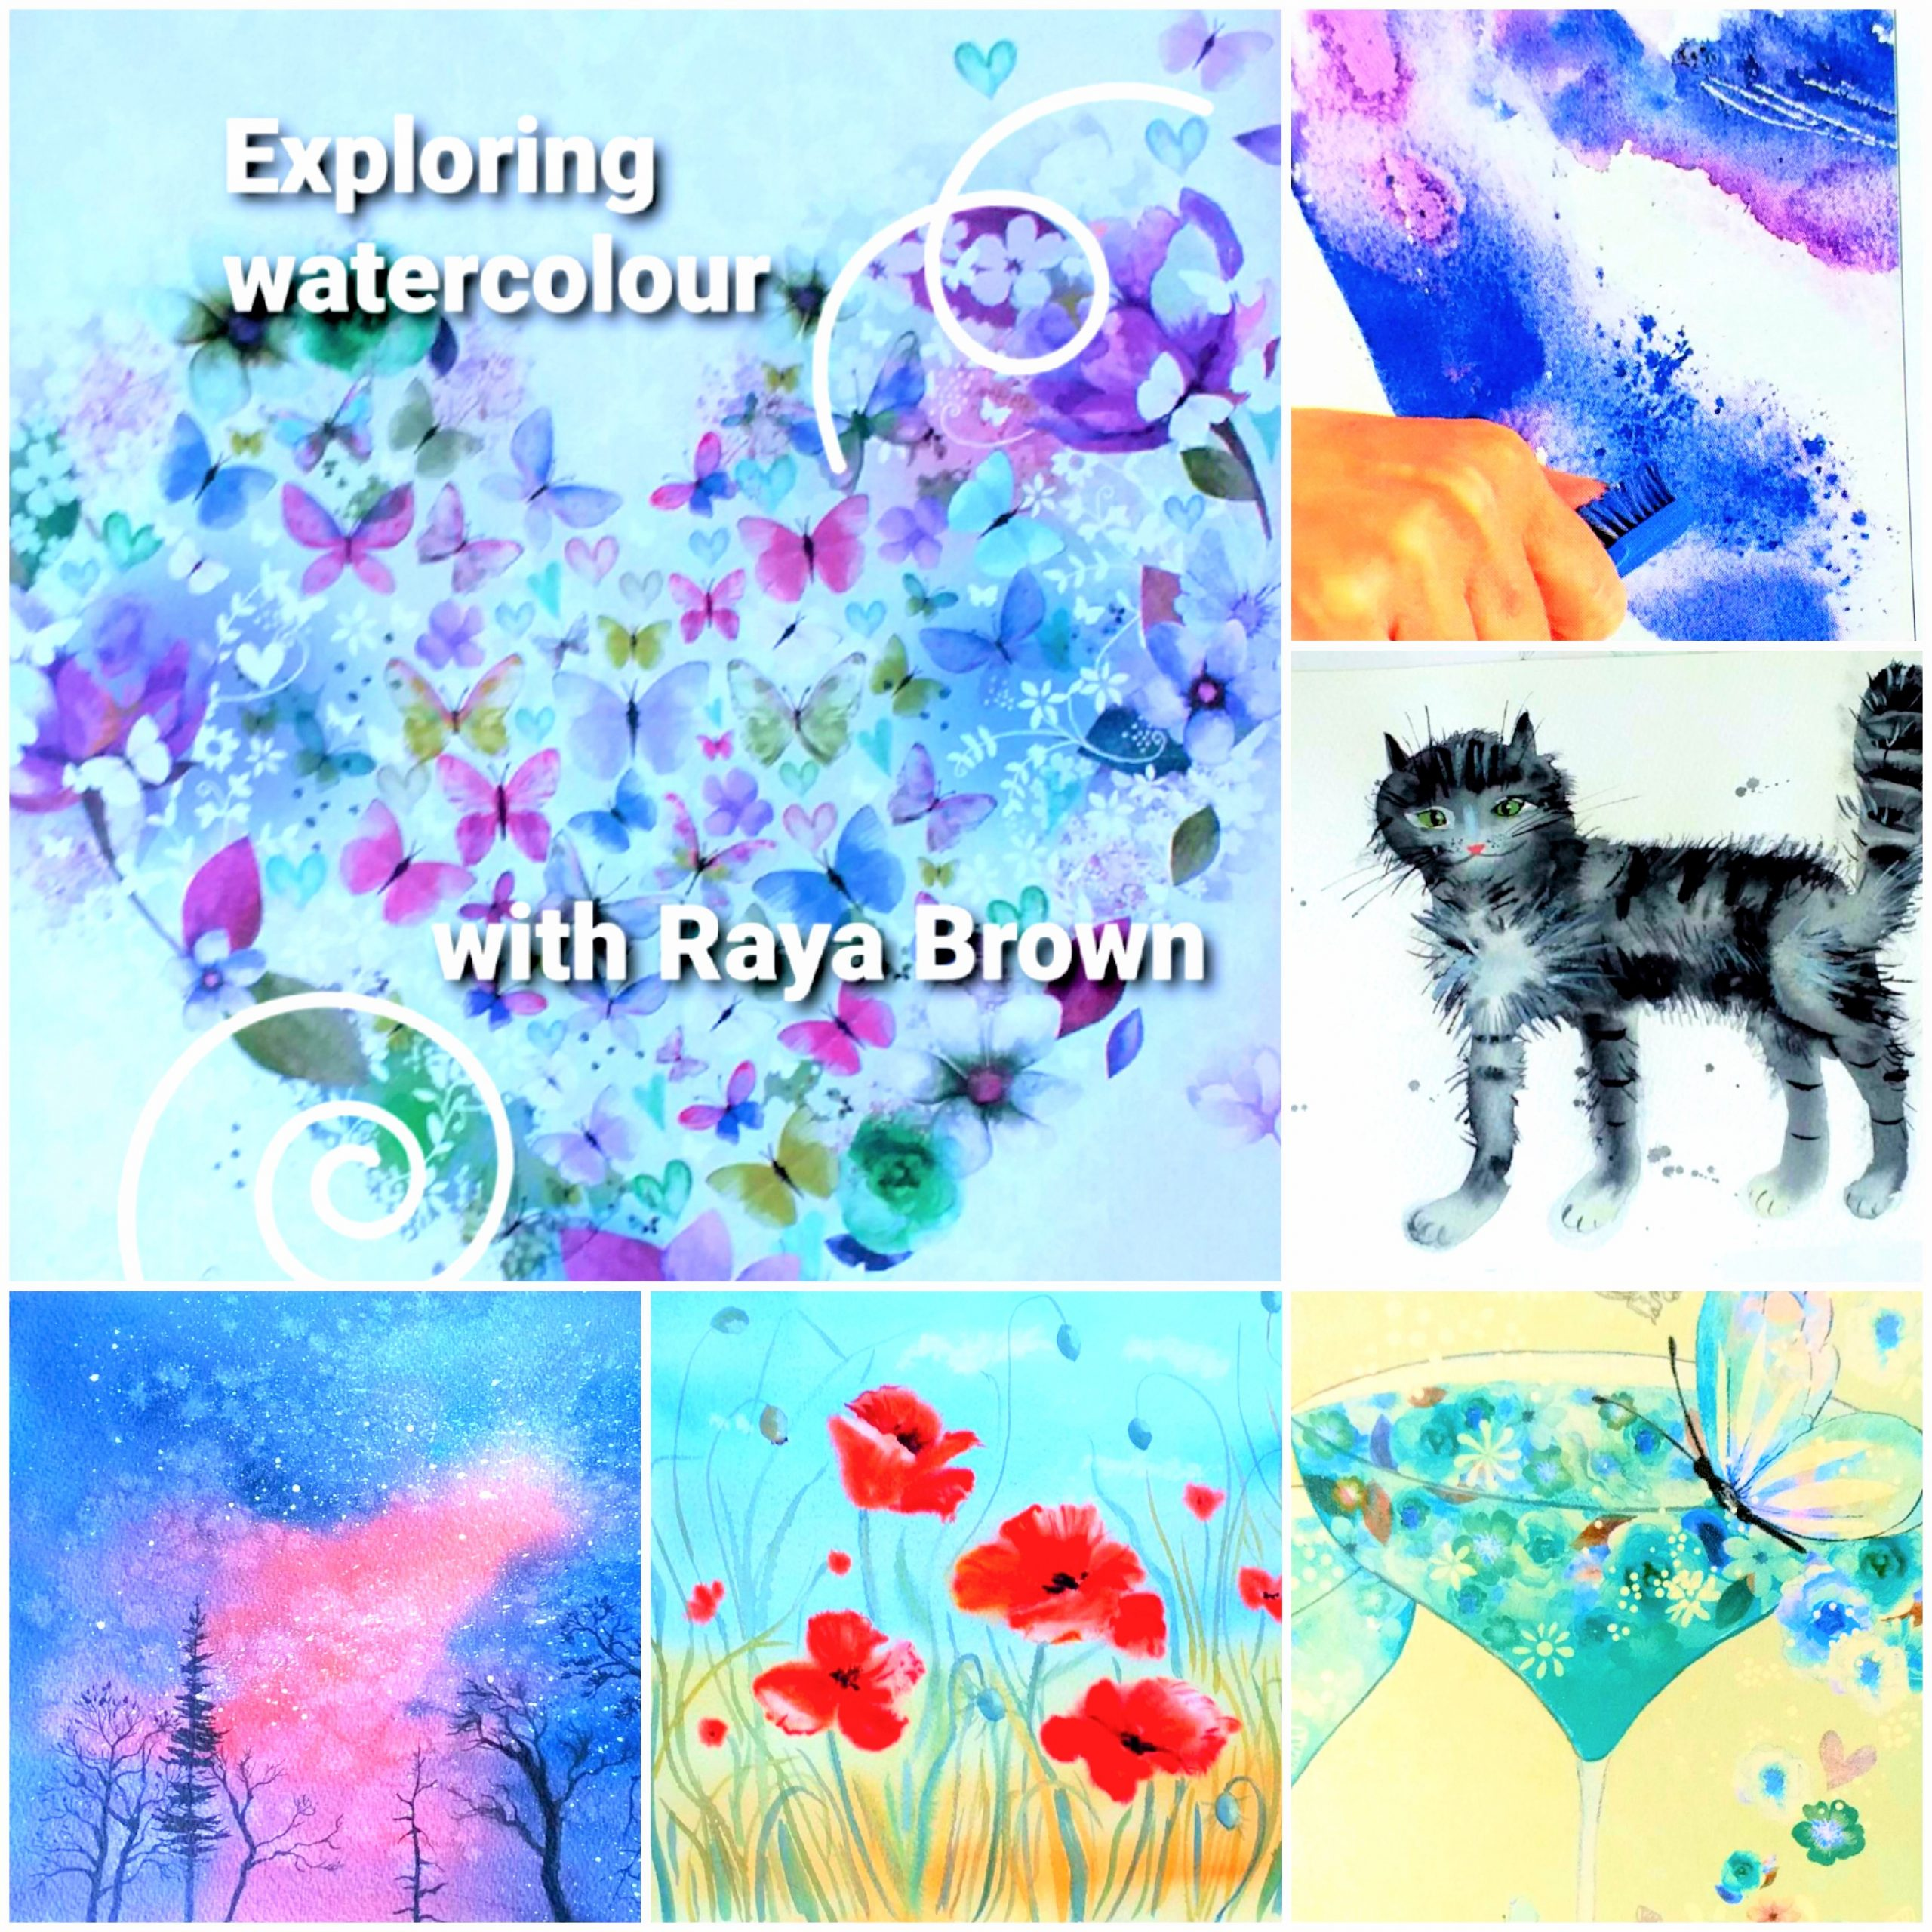 Explore watercolours at online art course with live tuition